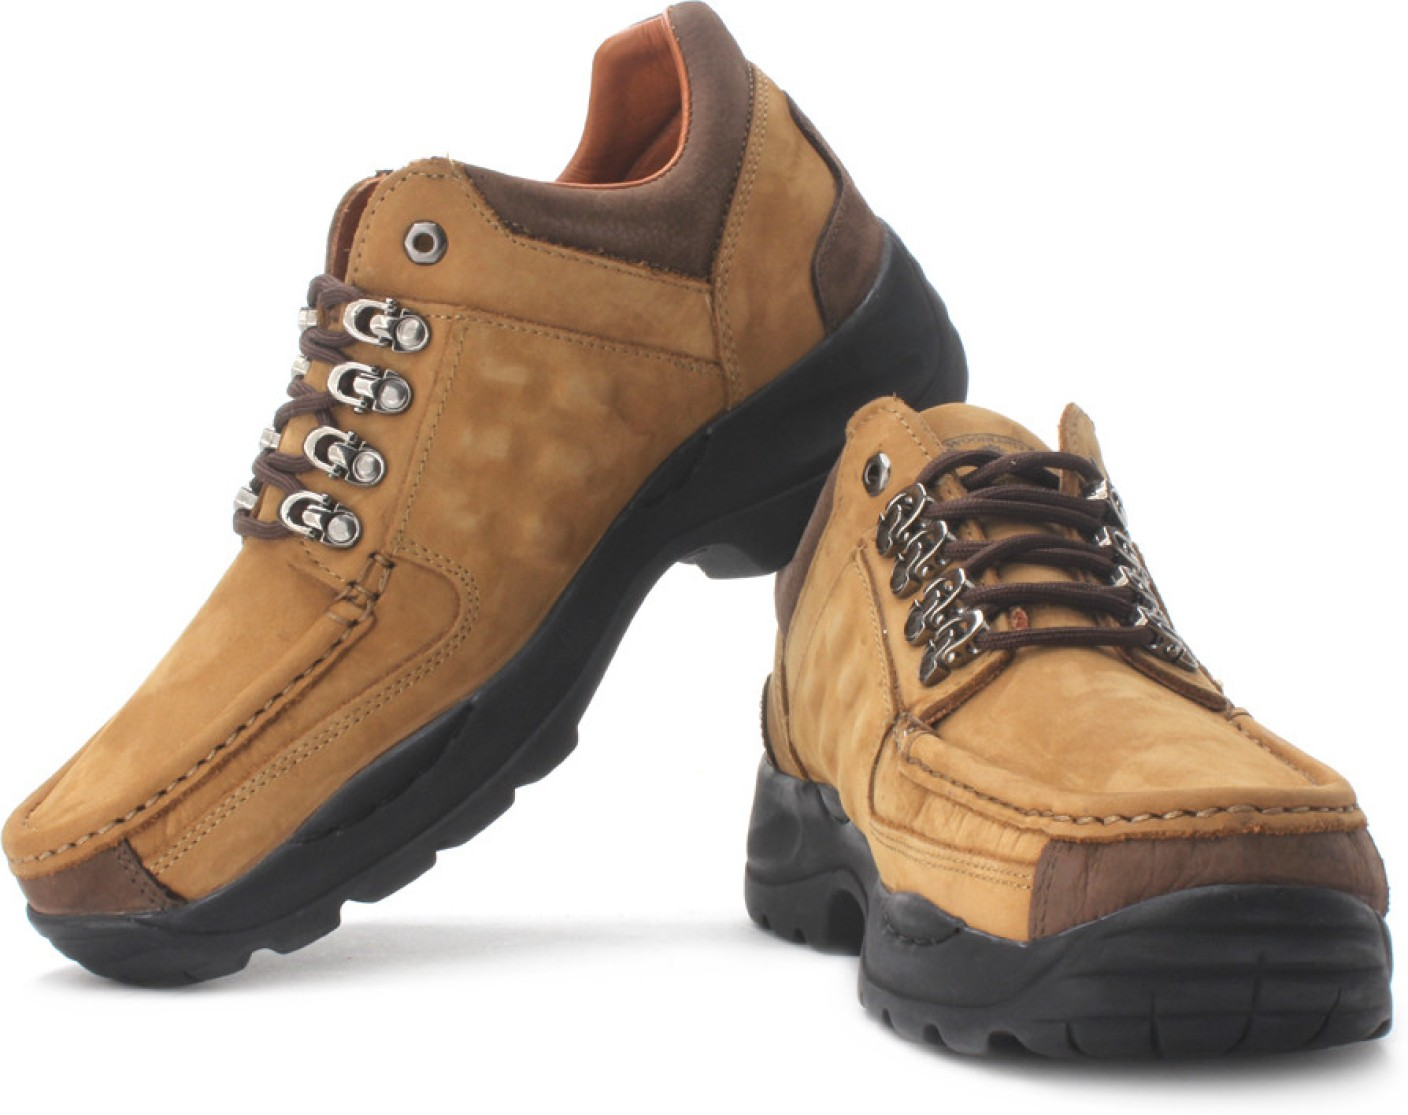 Woodland Outdoors Shoes For Men - Buy Camel Color Woodland ...